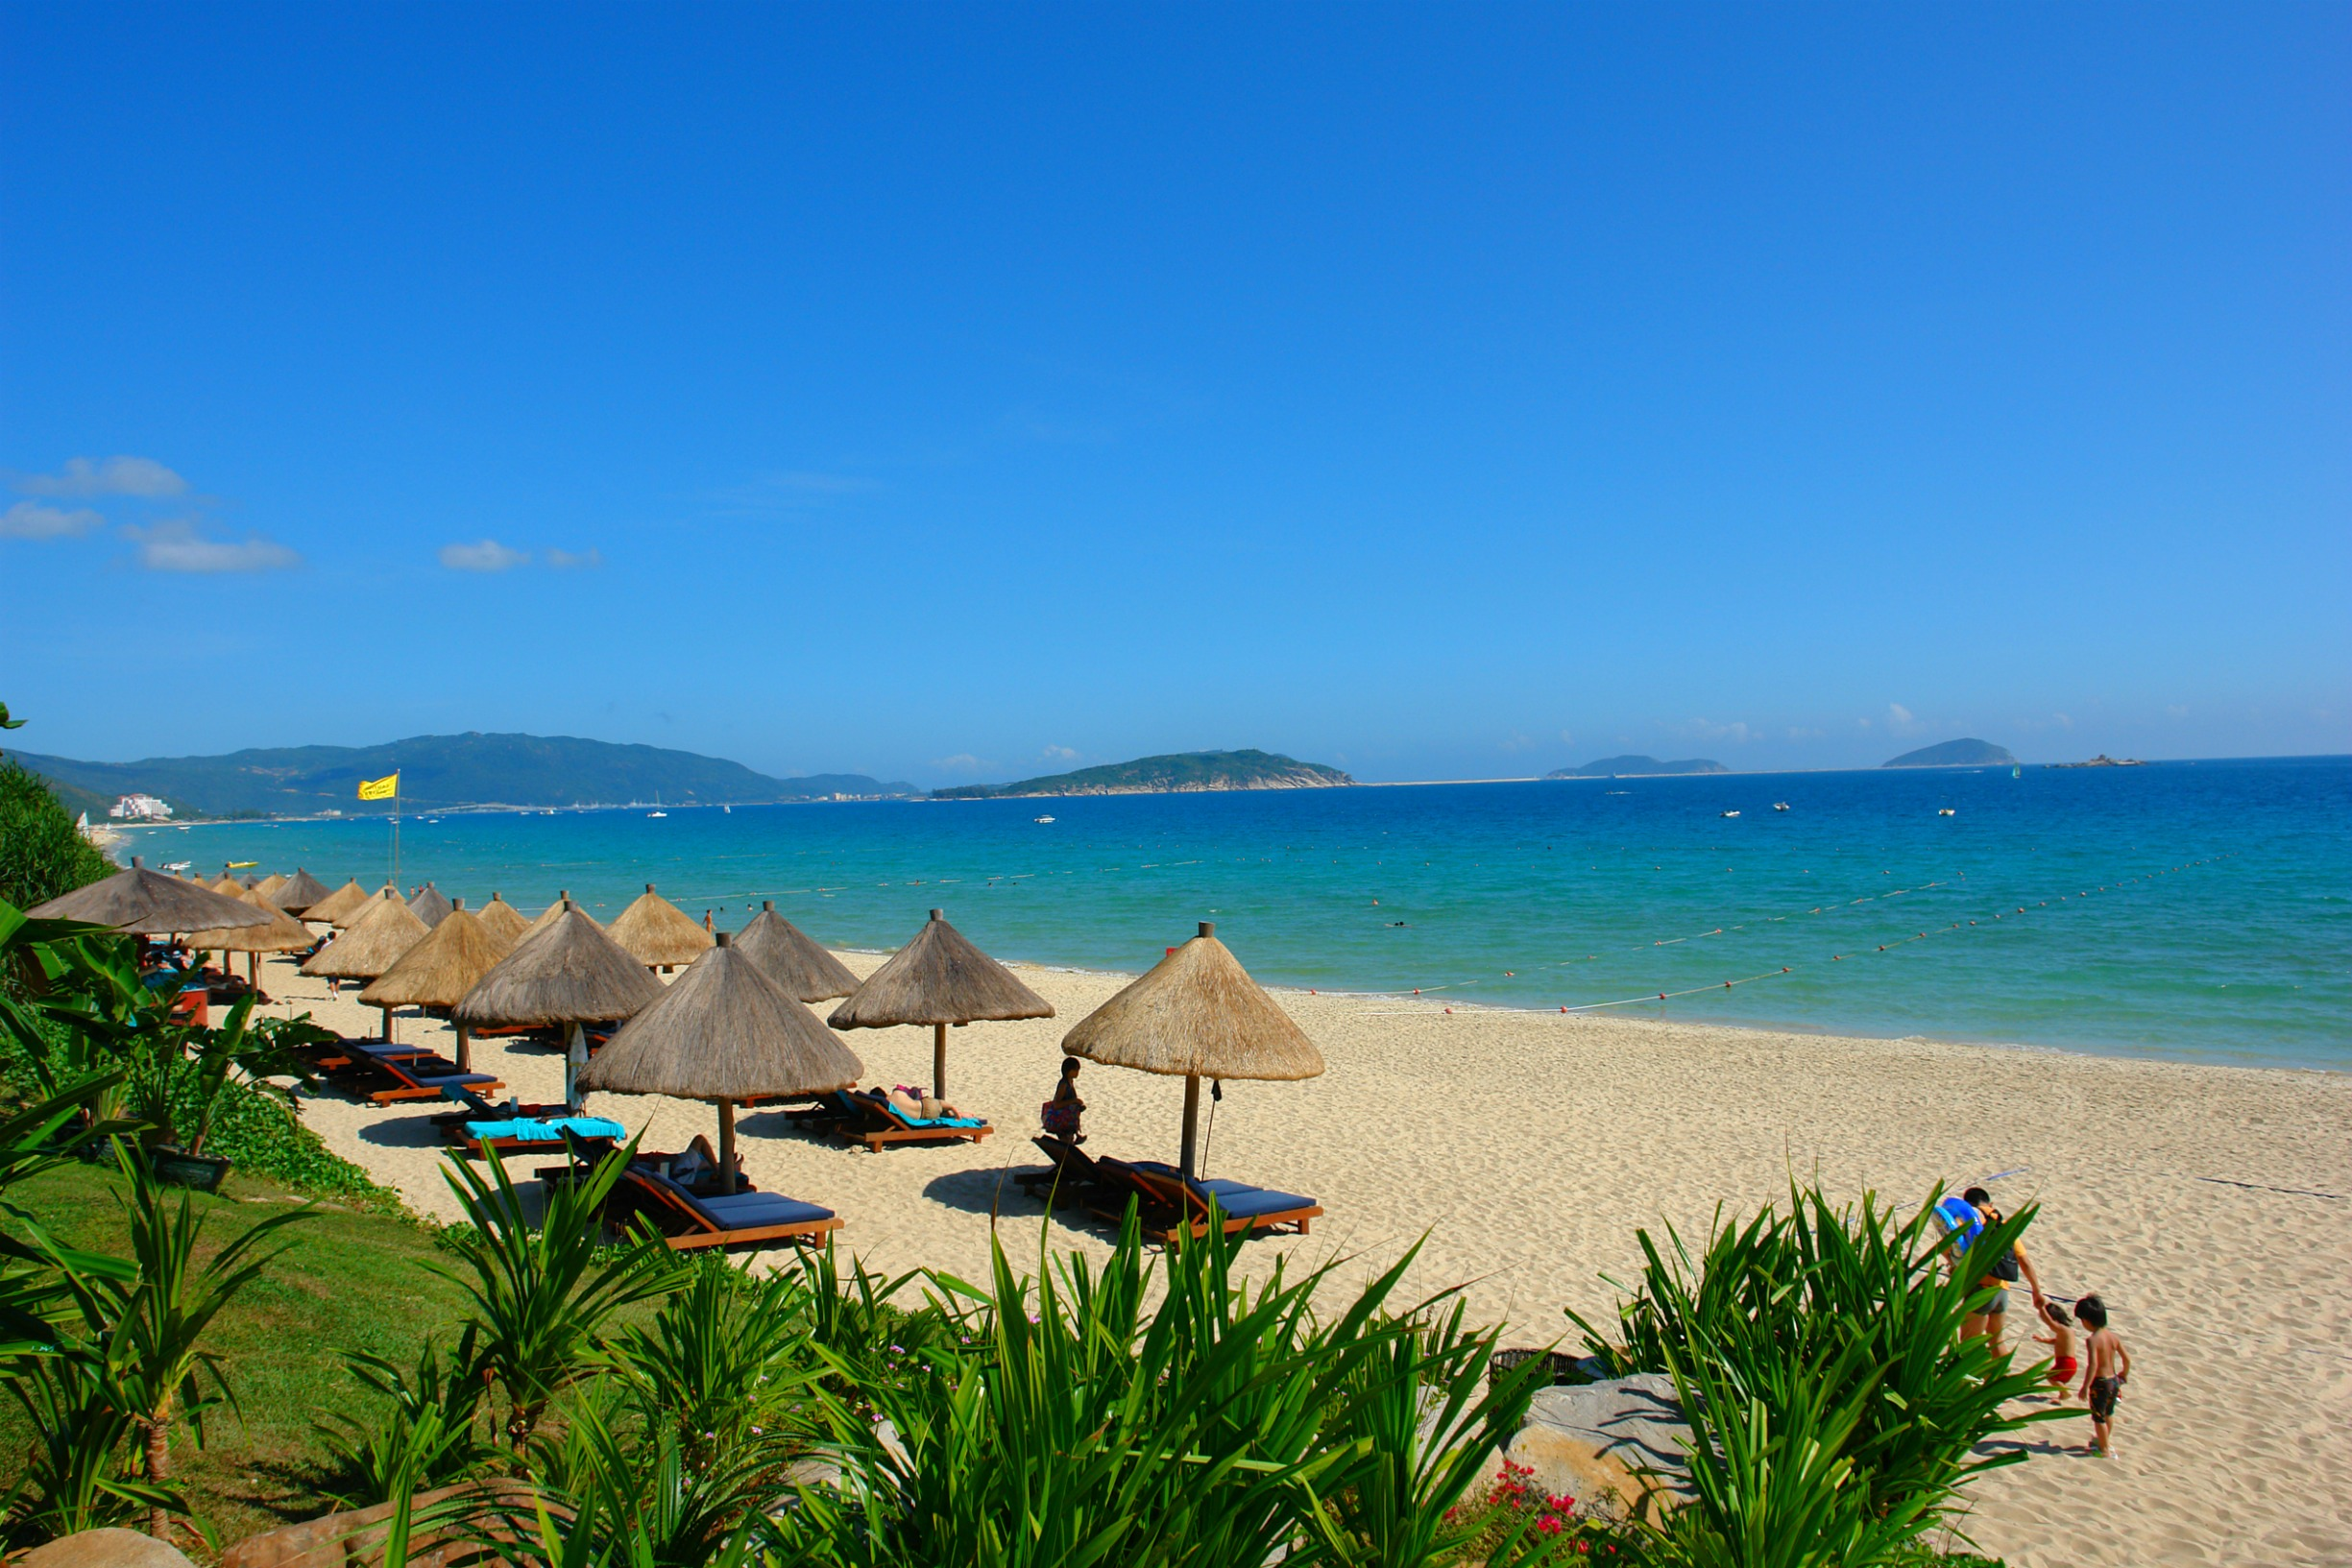 Sanya_Sun_Photo_by_Dale_Preston_1.jpg